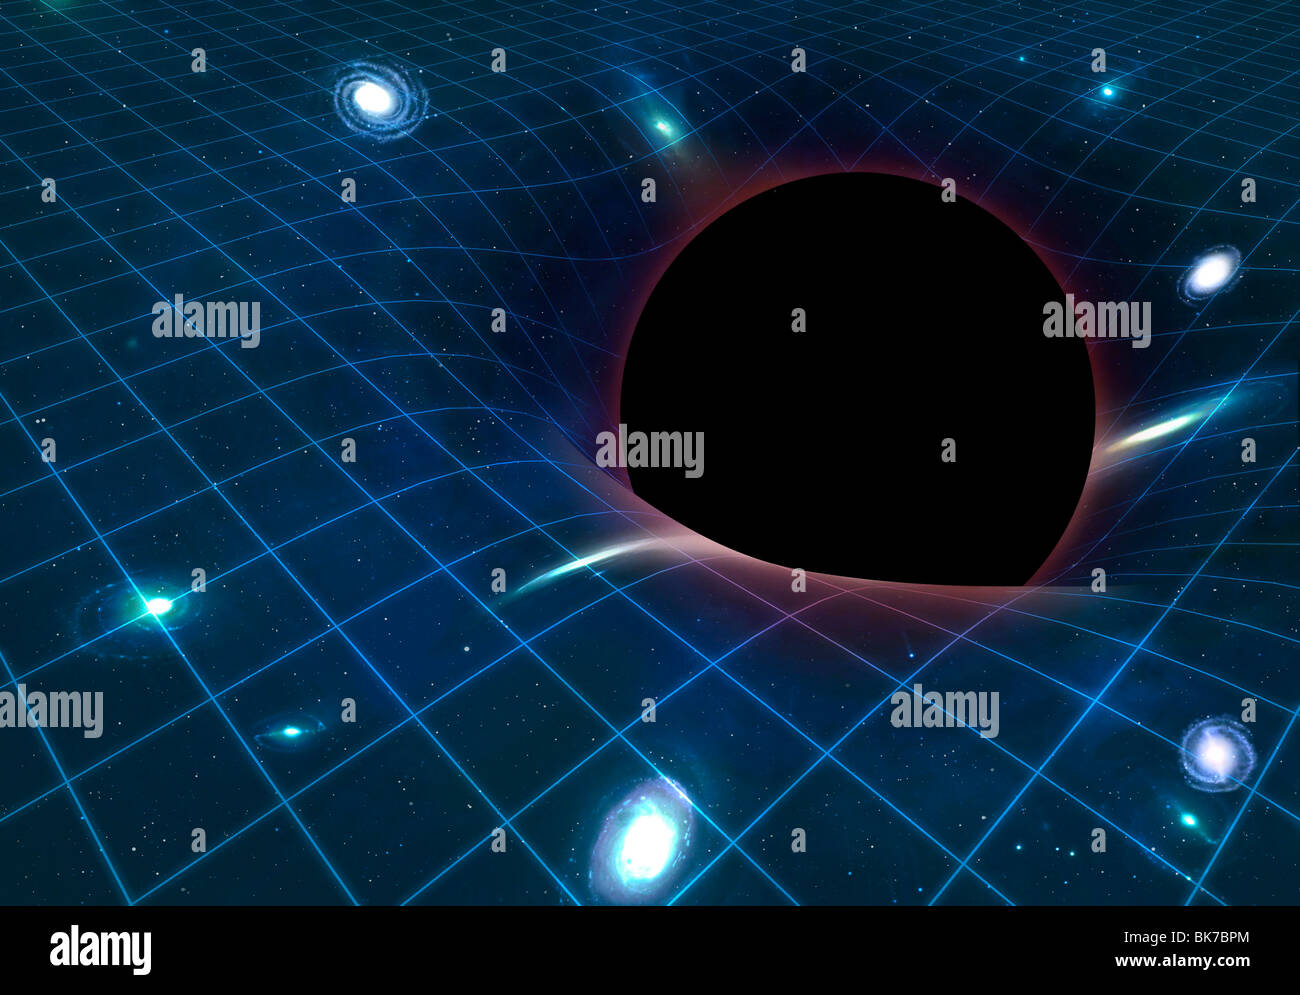 Black hole warping space time artwork stock photo for Space time fabric black hole